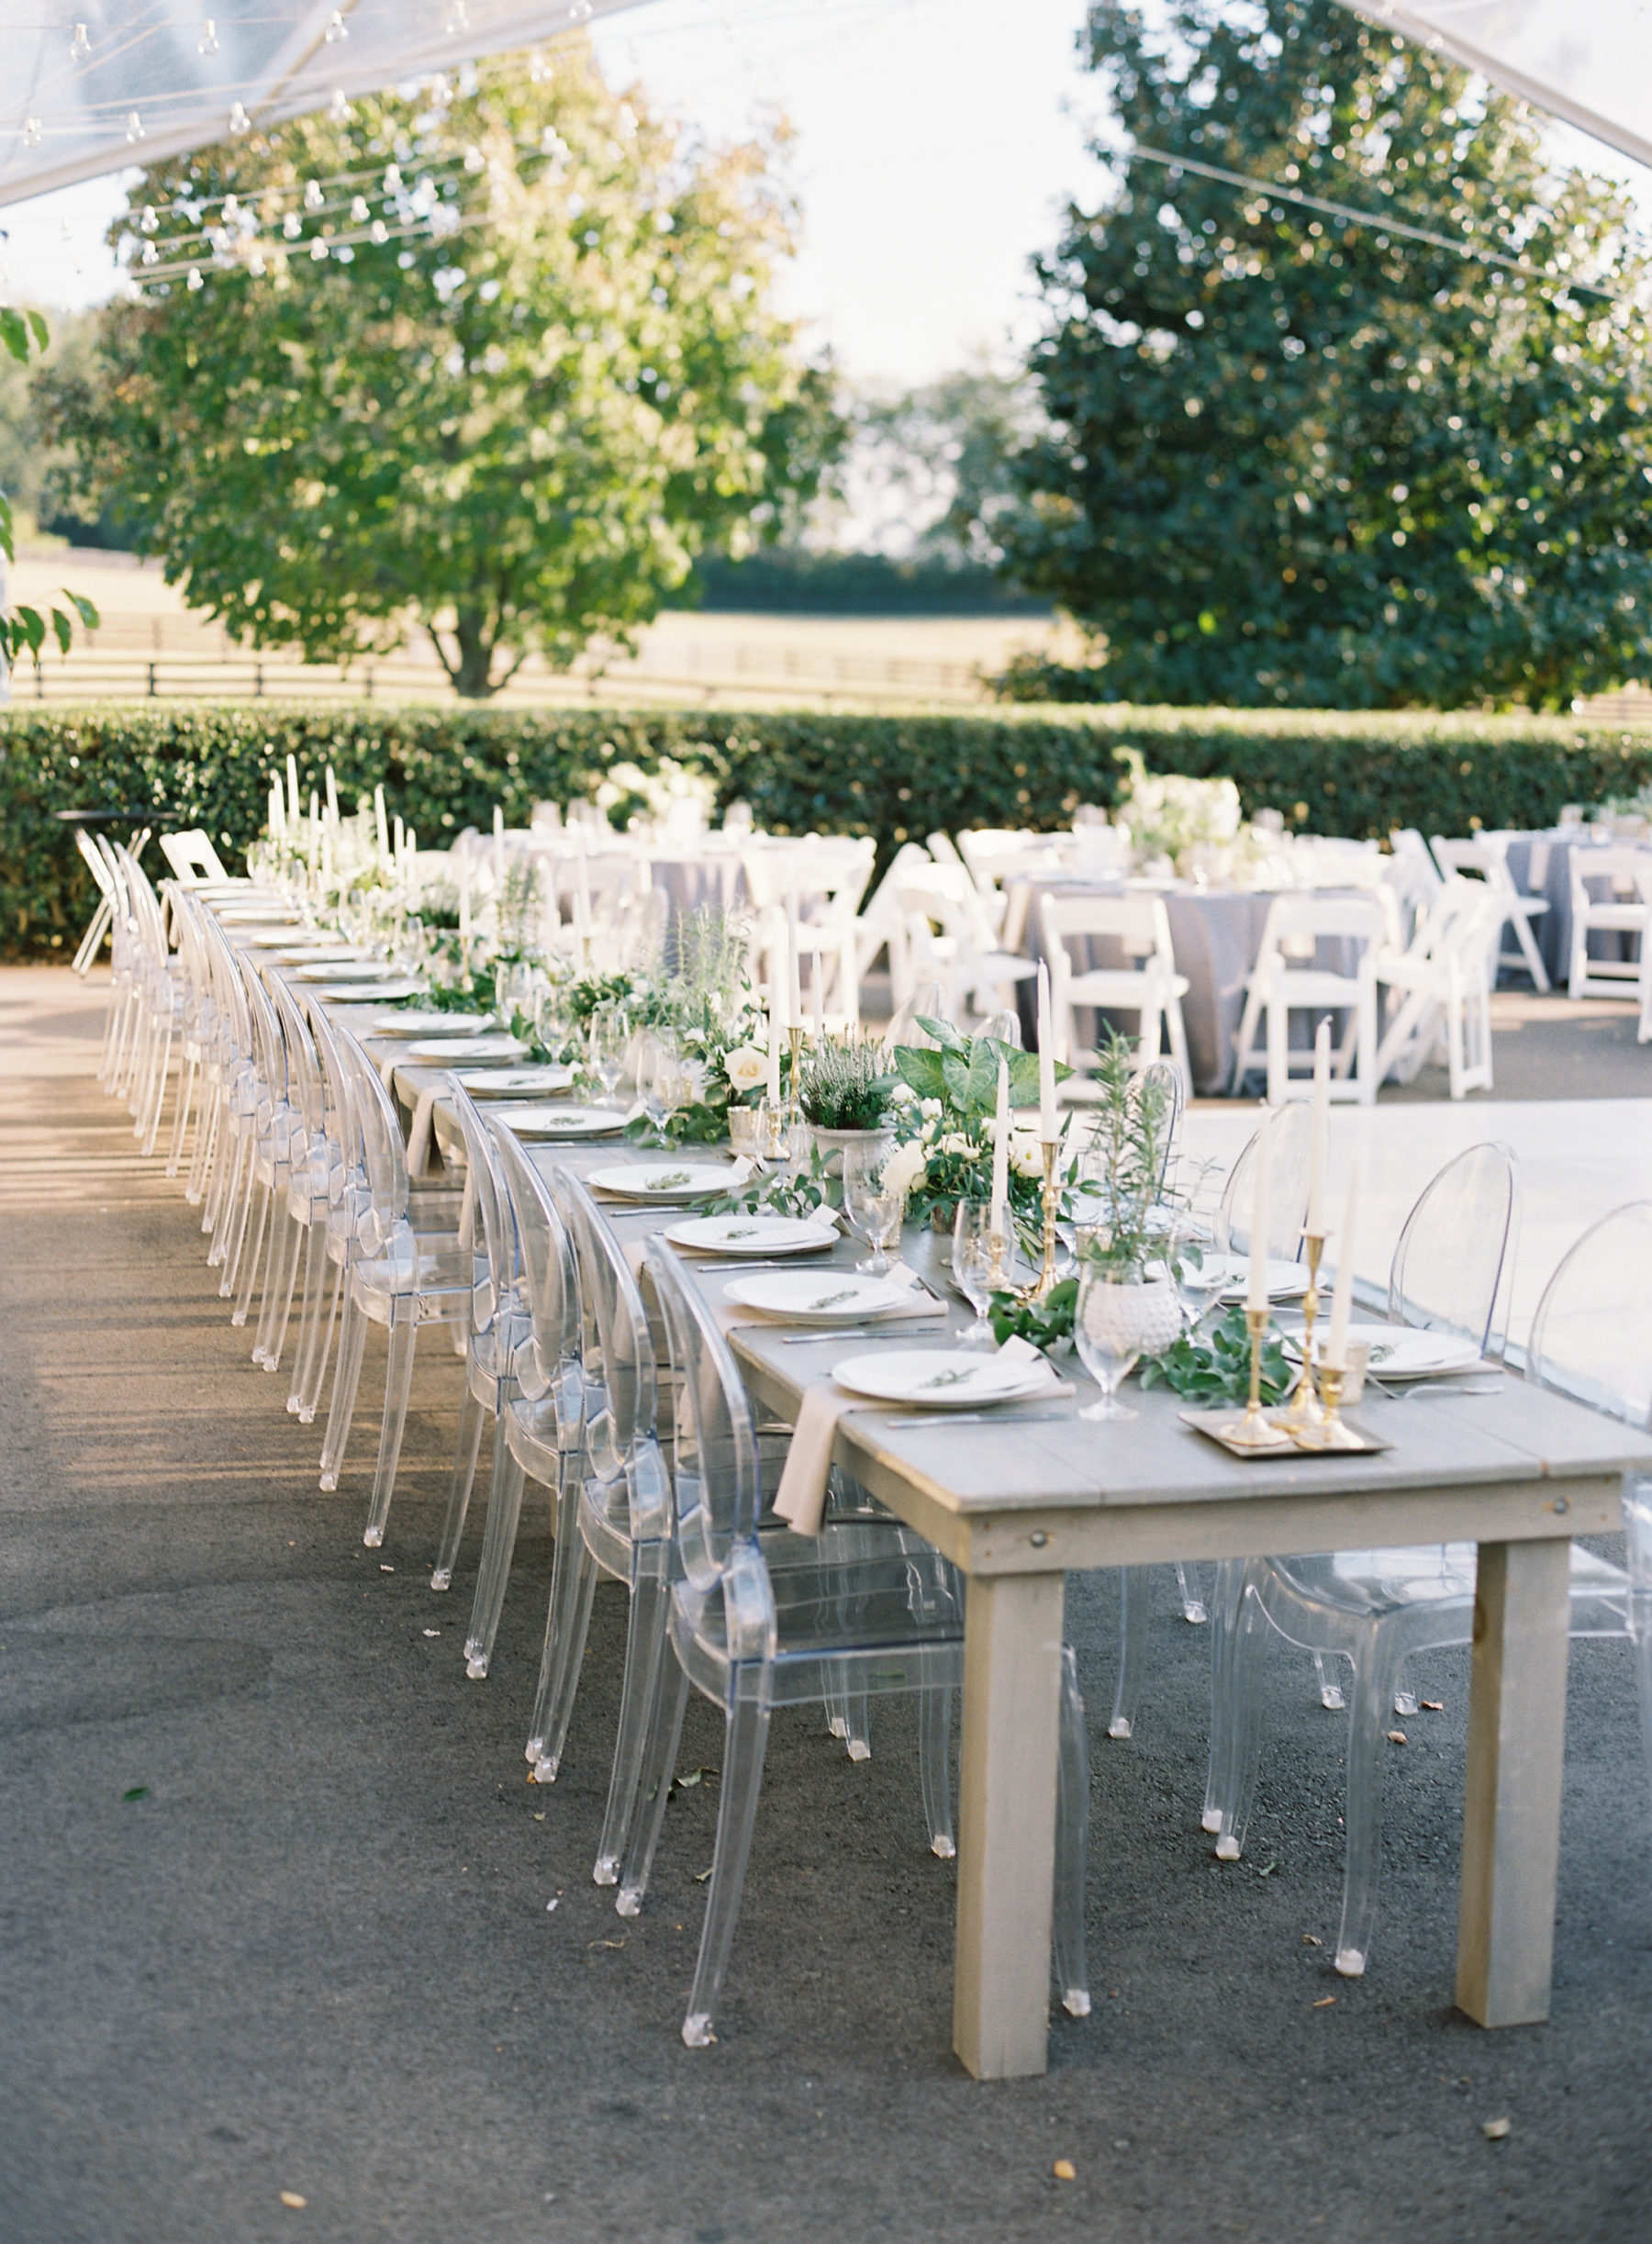 Family style wedding reception tables with greenery